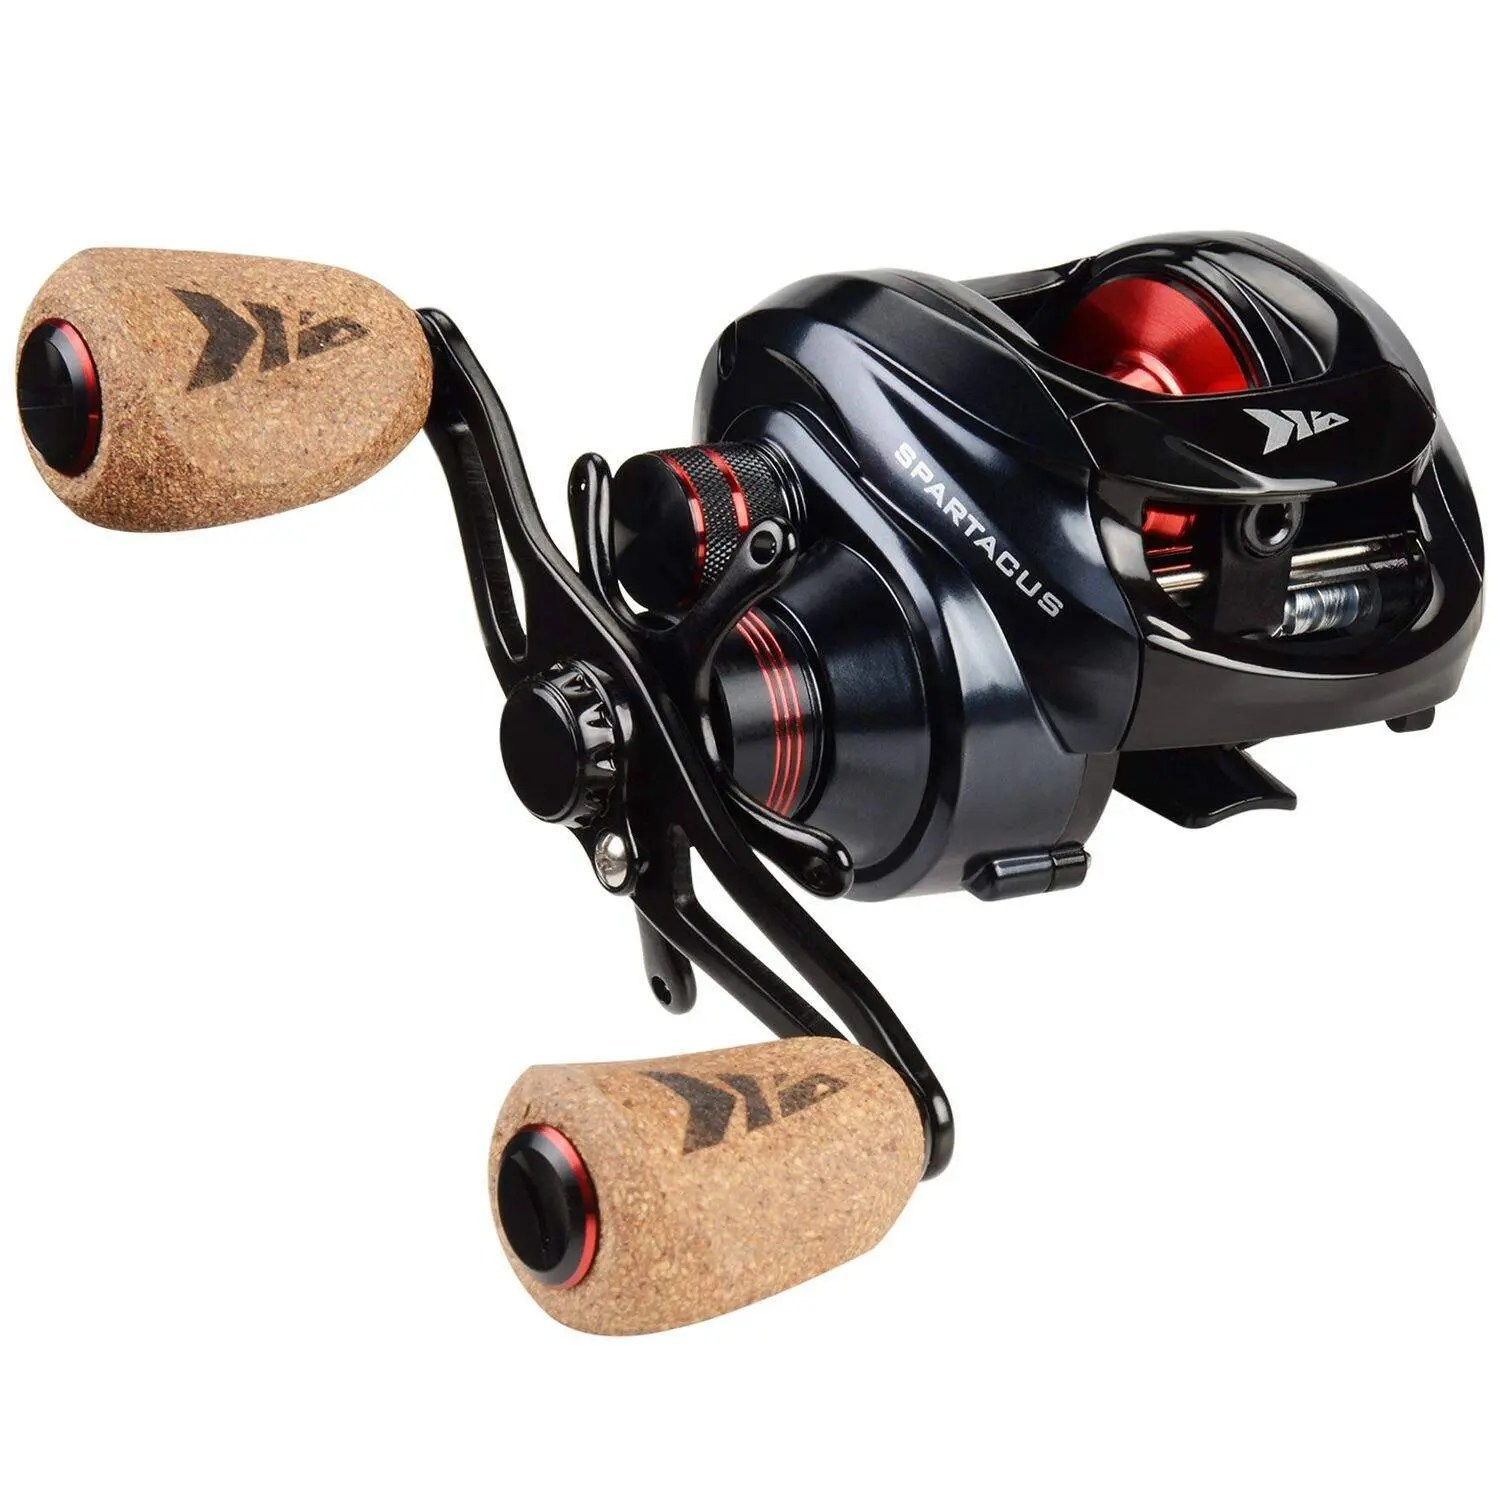 KastKing Spartacus Plus Baitcasting Fishing Reel Ultra Smooth